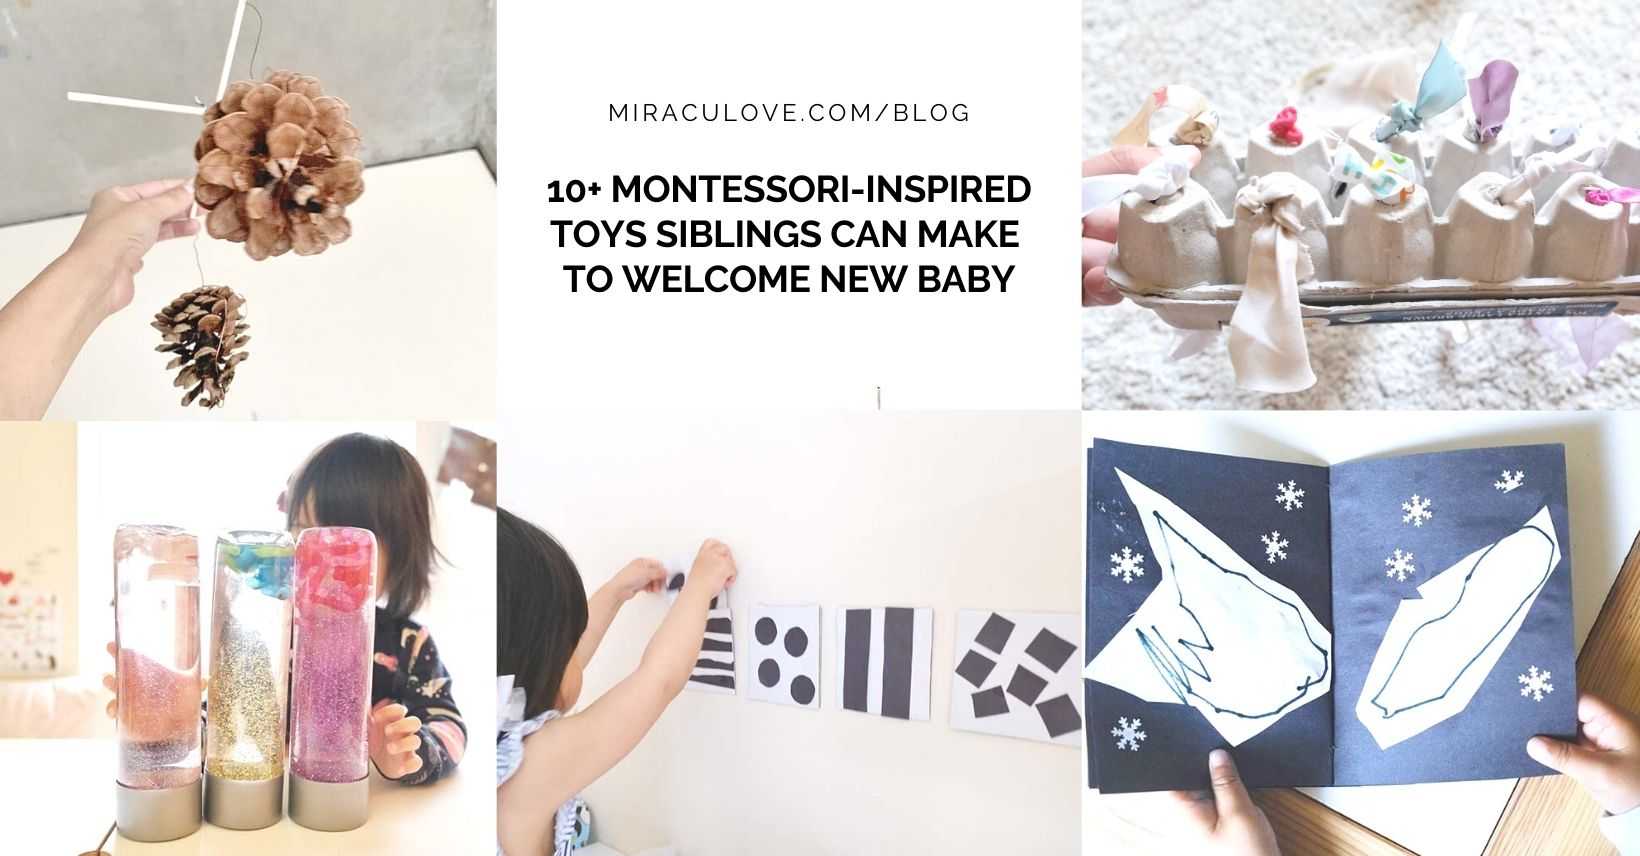 10+ Montessori-inspired Toys Siblings Can Make to Welcome New Baby